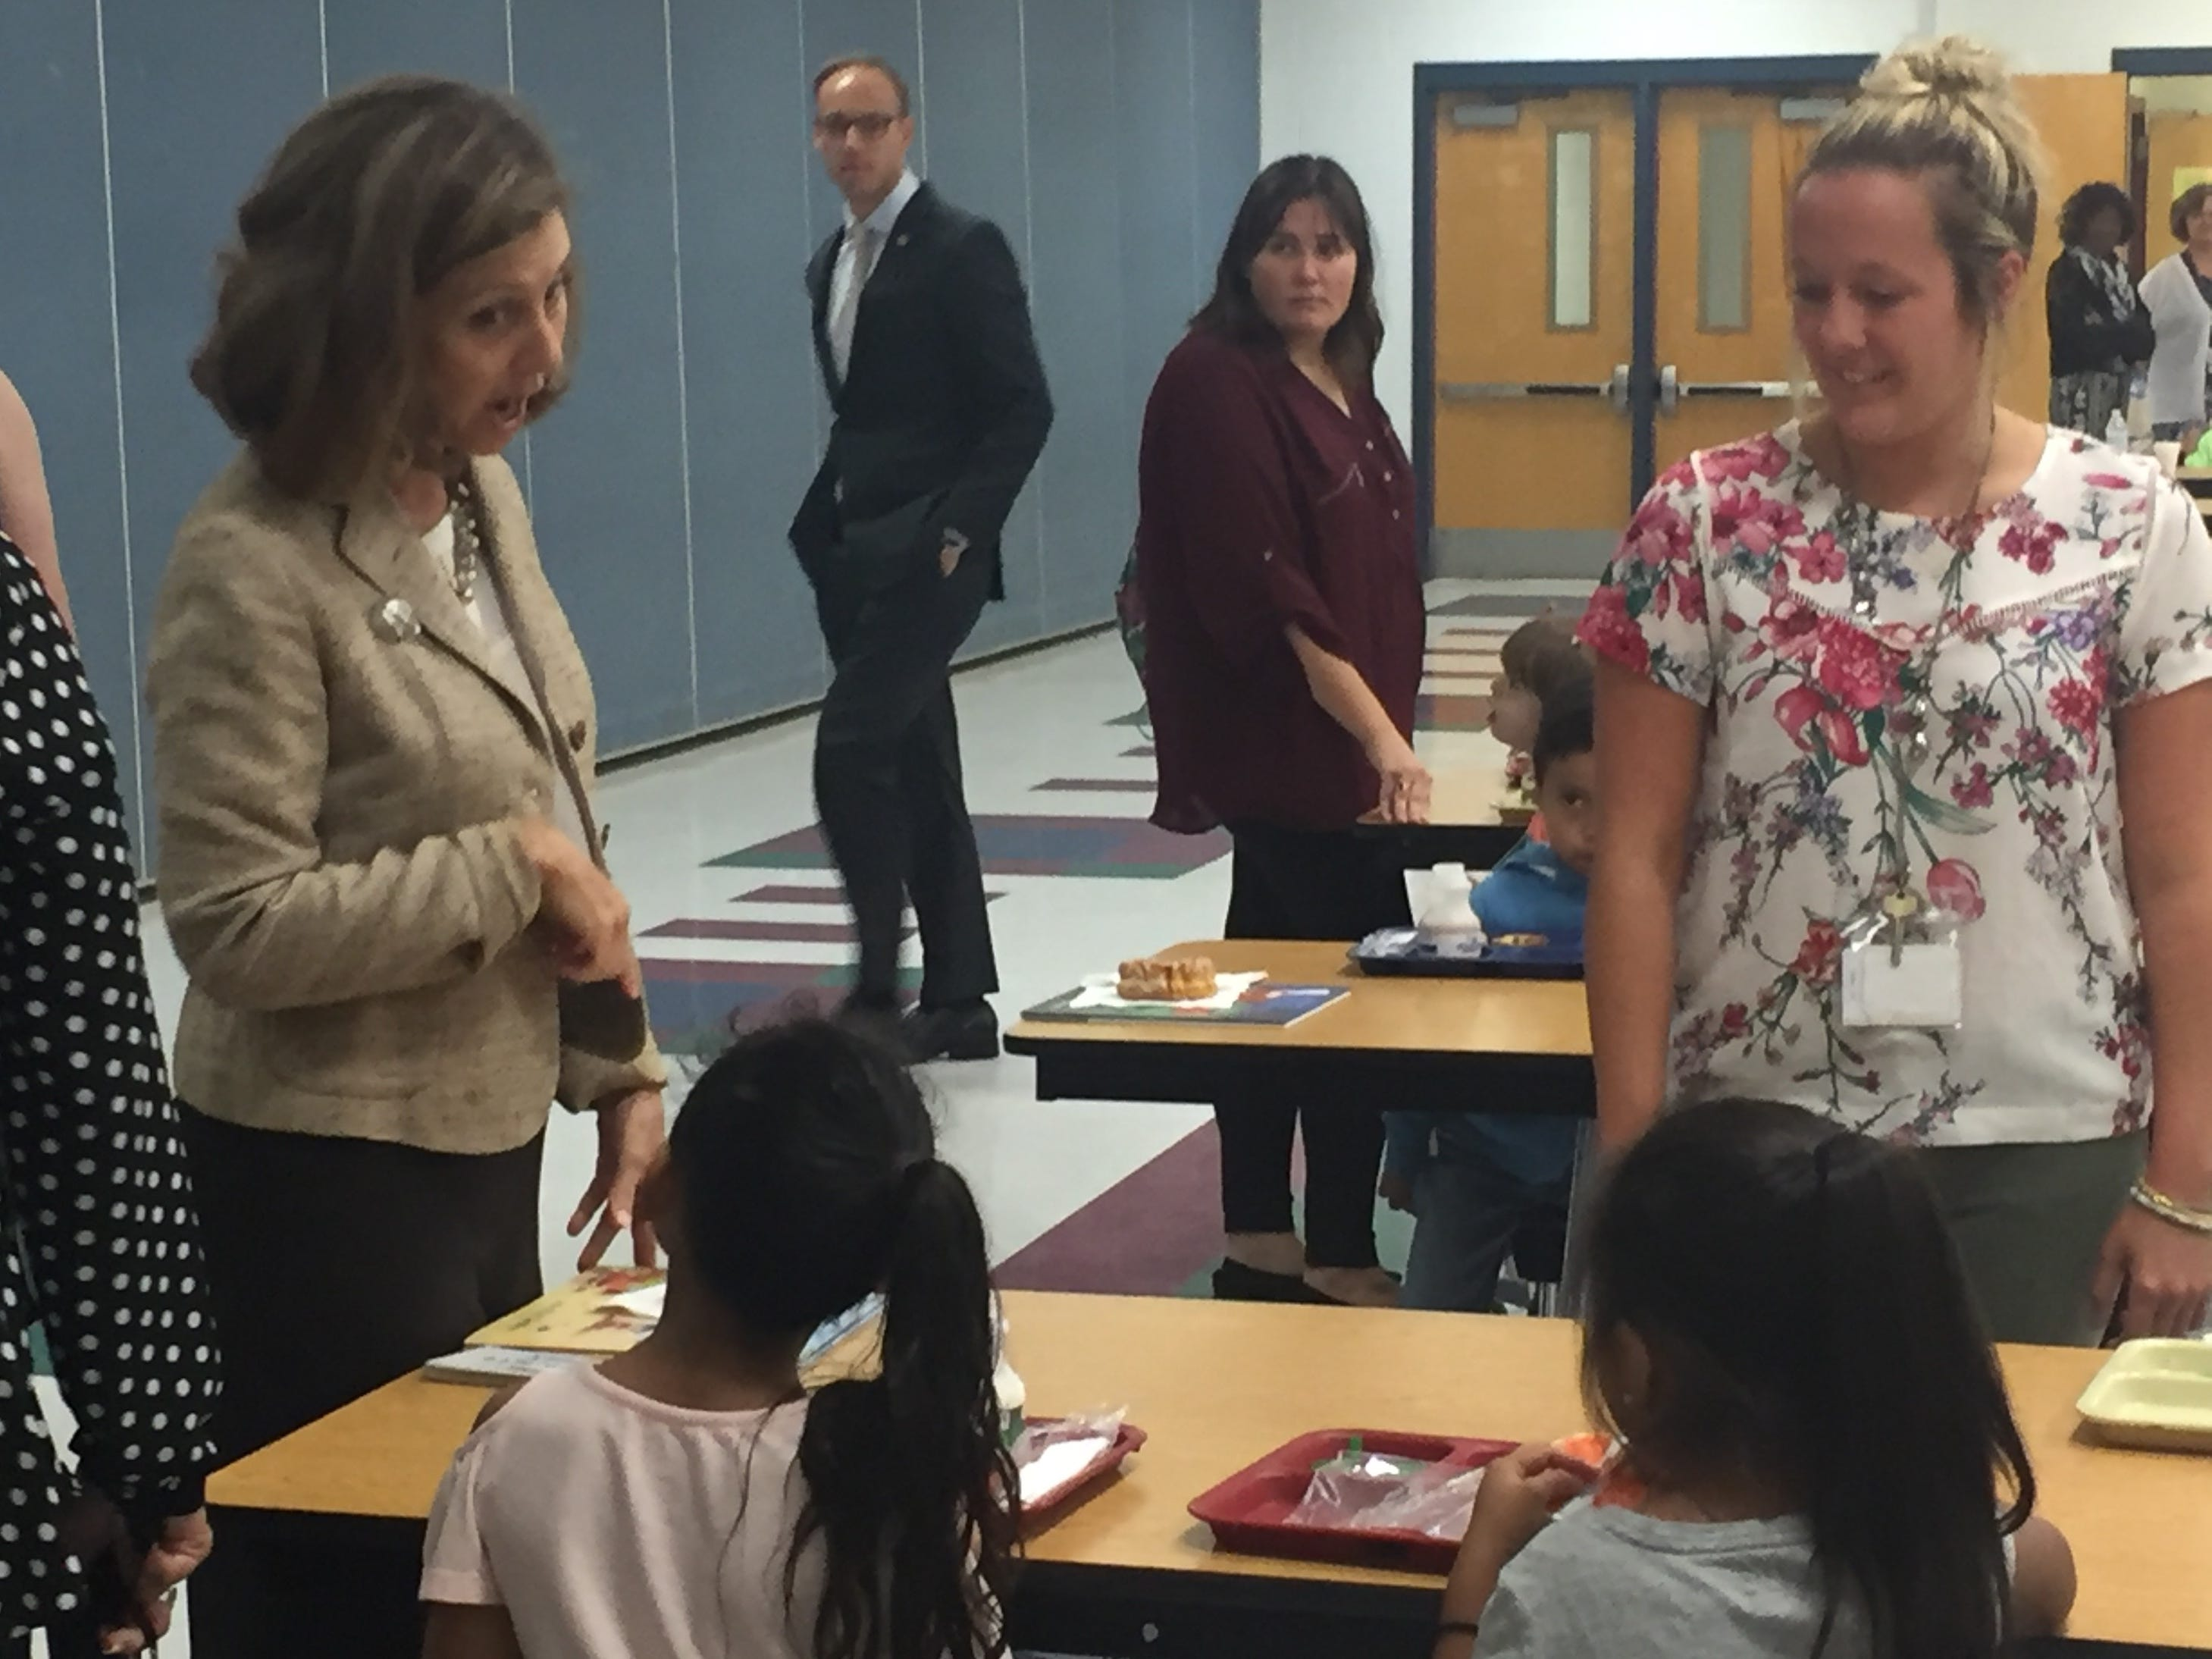 Virginia First Lady Pamela Northam chats with students in the cafeteria during a visit to Accawmacke Elementary School in Daugherty, Virginia on Monday, Sept. 20, 2018.